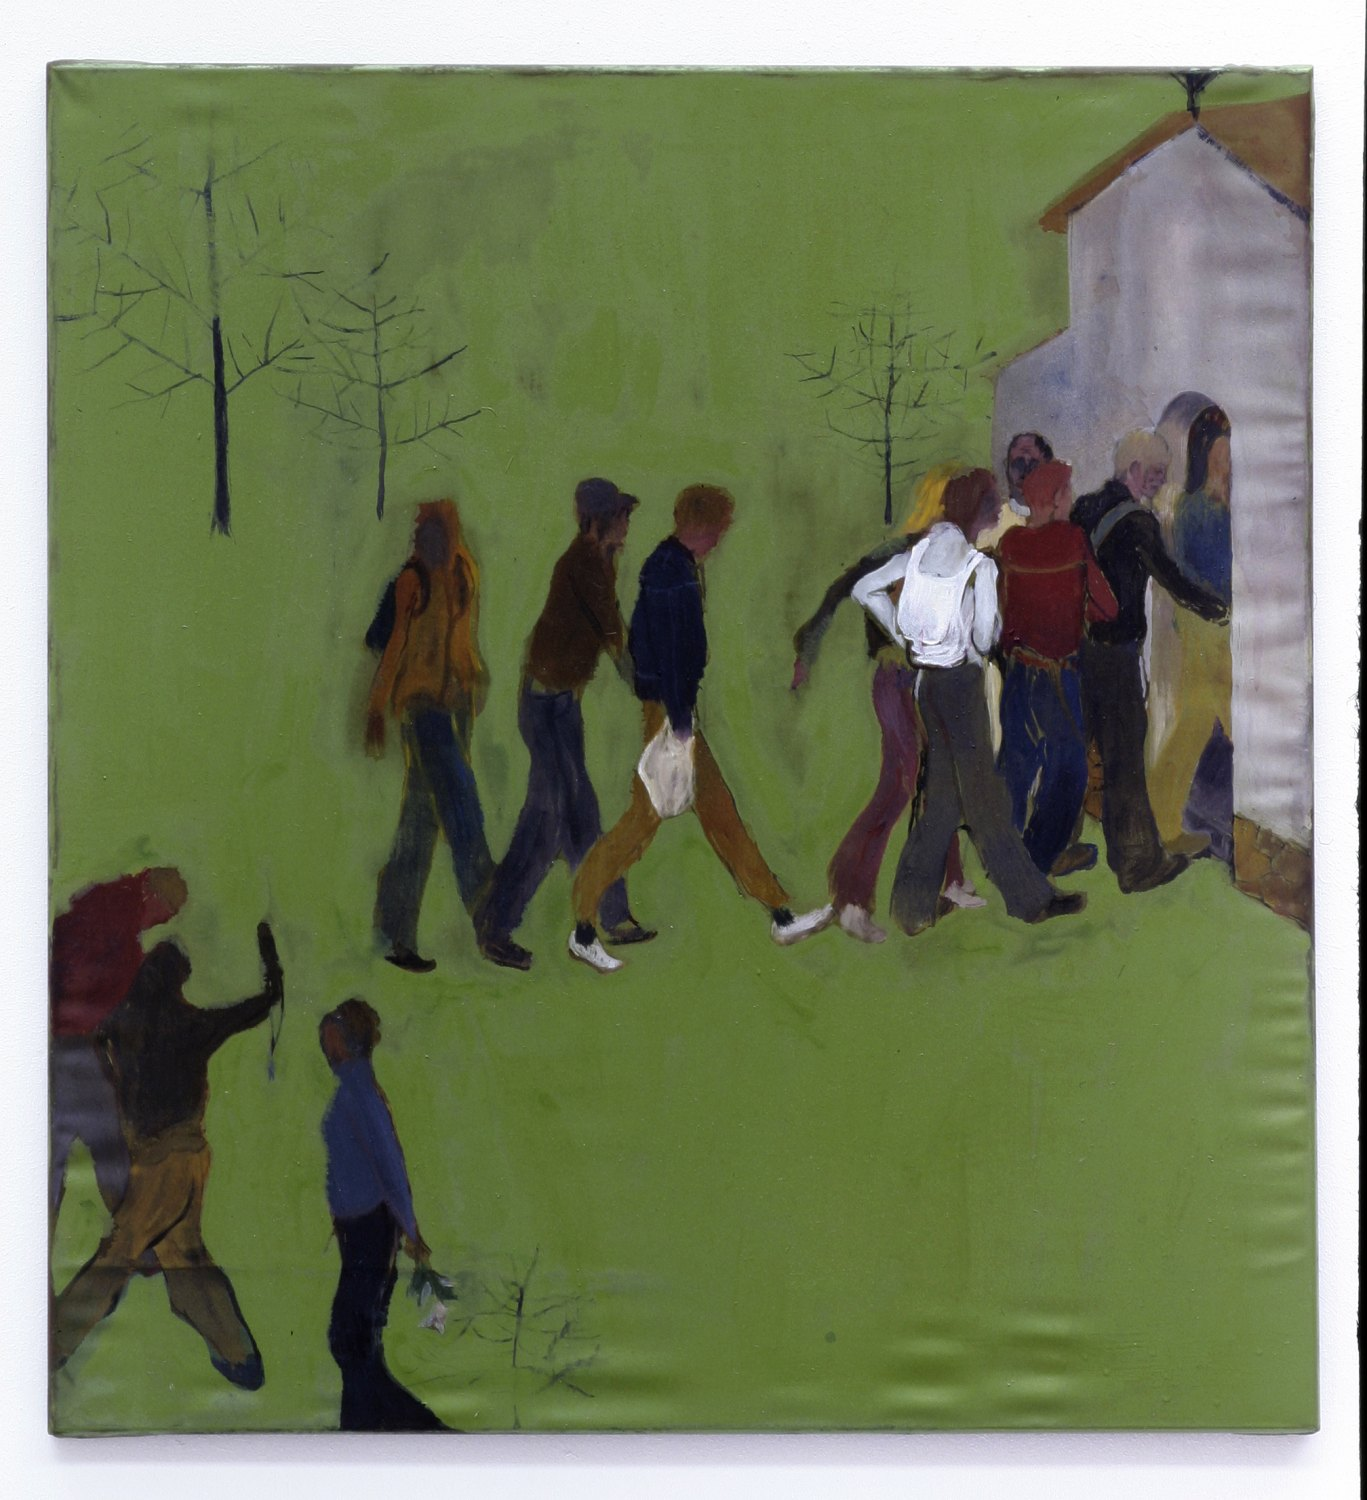 Kai Althoff Untitled, 2004 Oil on canvas, 70 × 64.5 cm